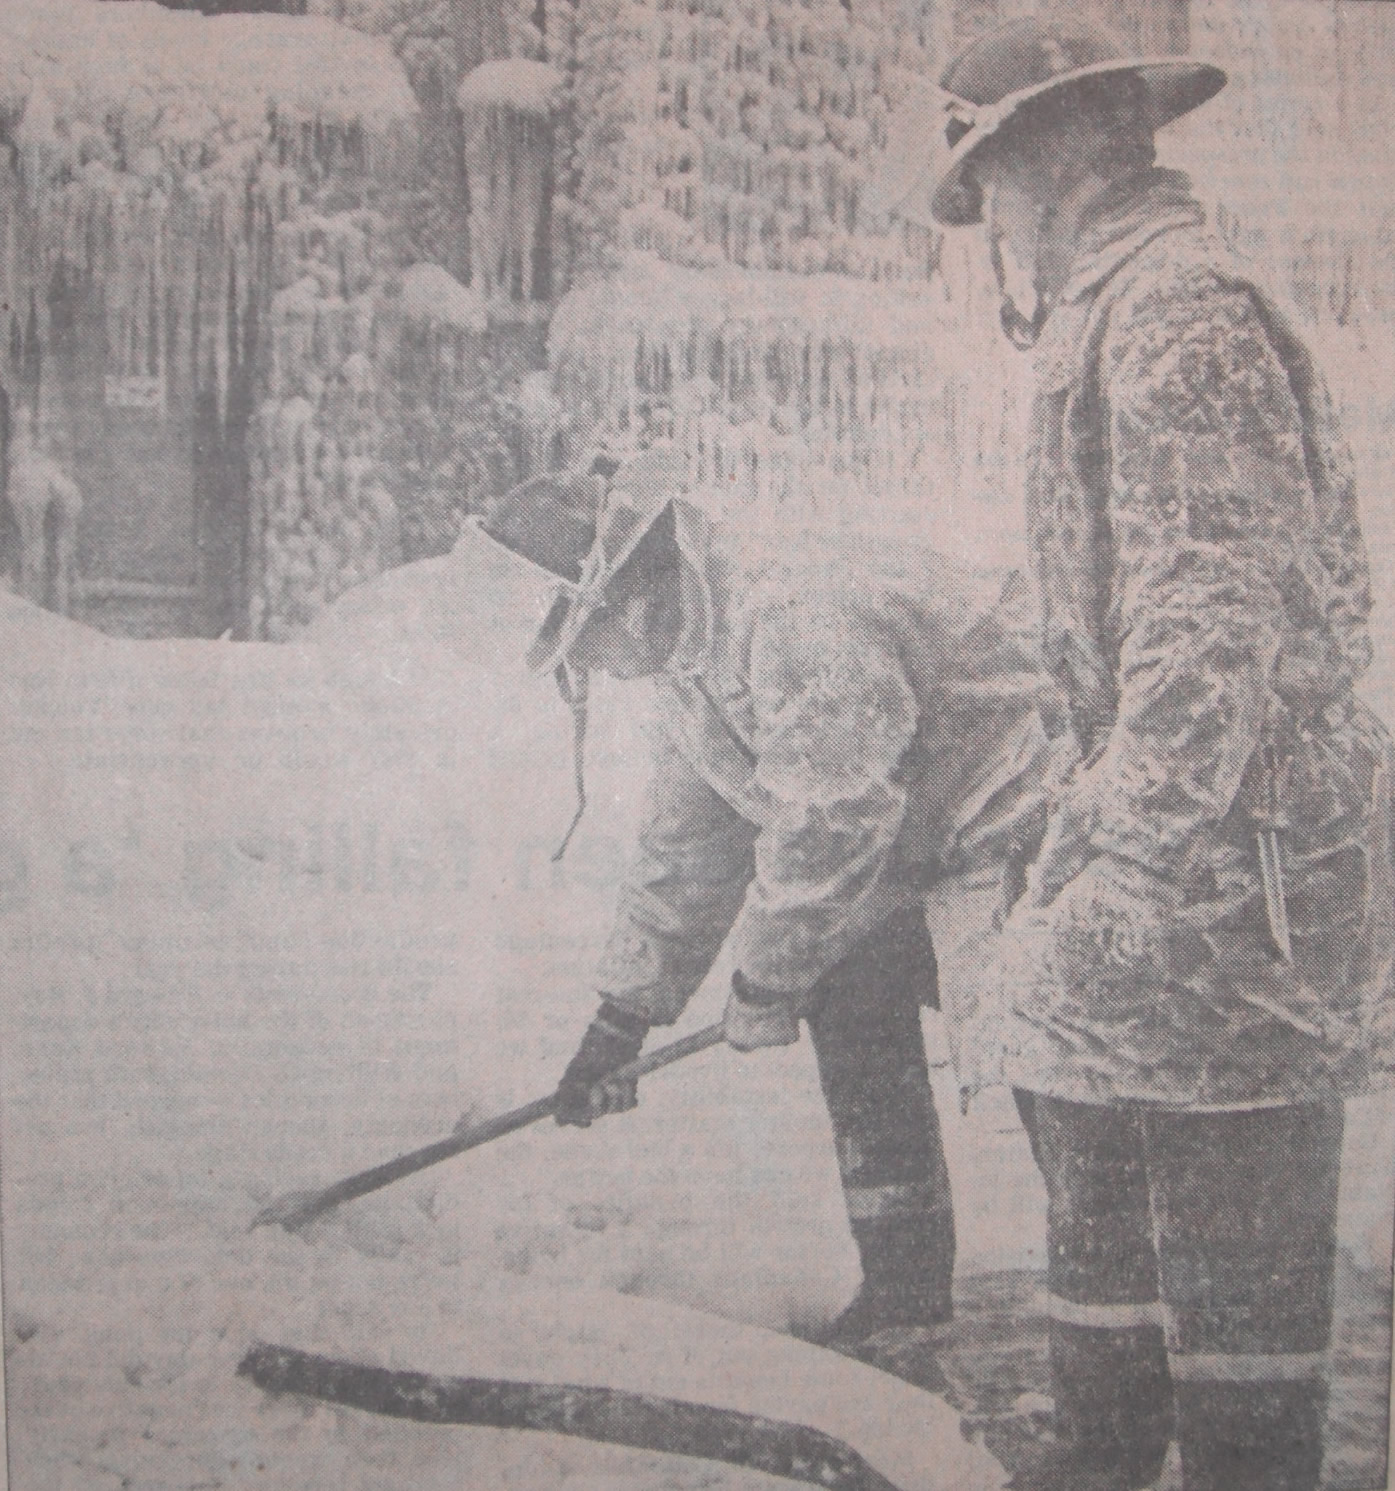 Firefighters chopping hoses out of ice.